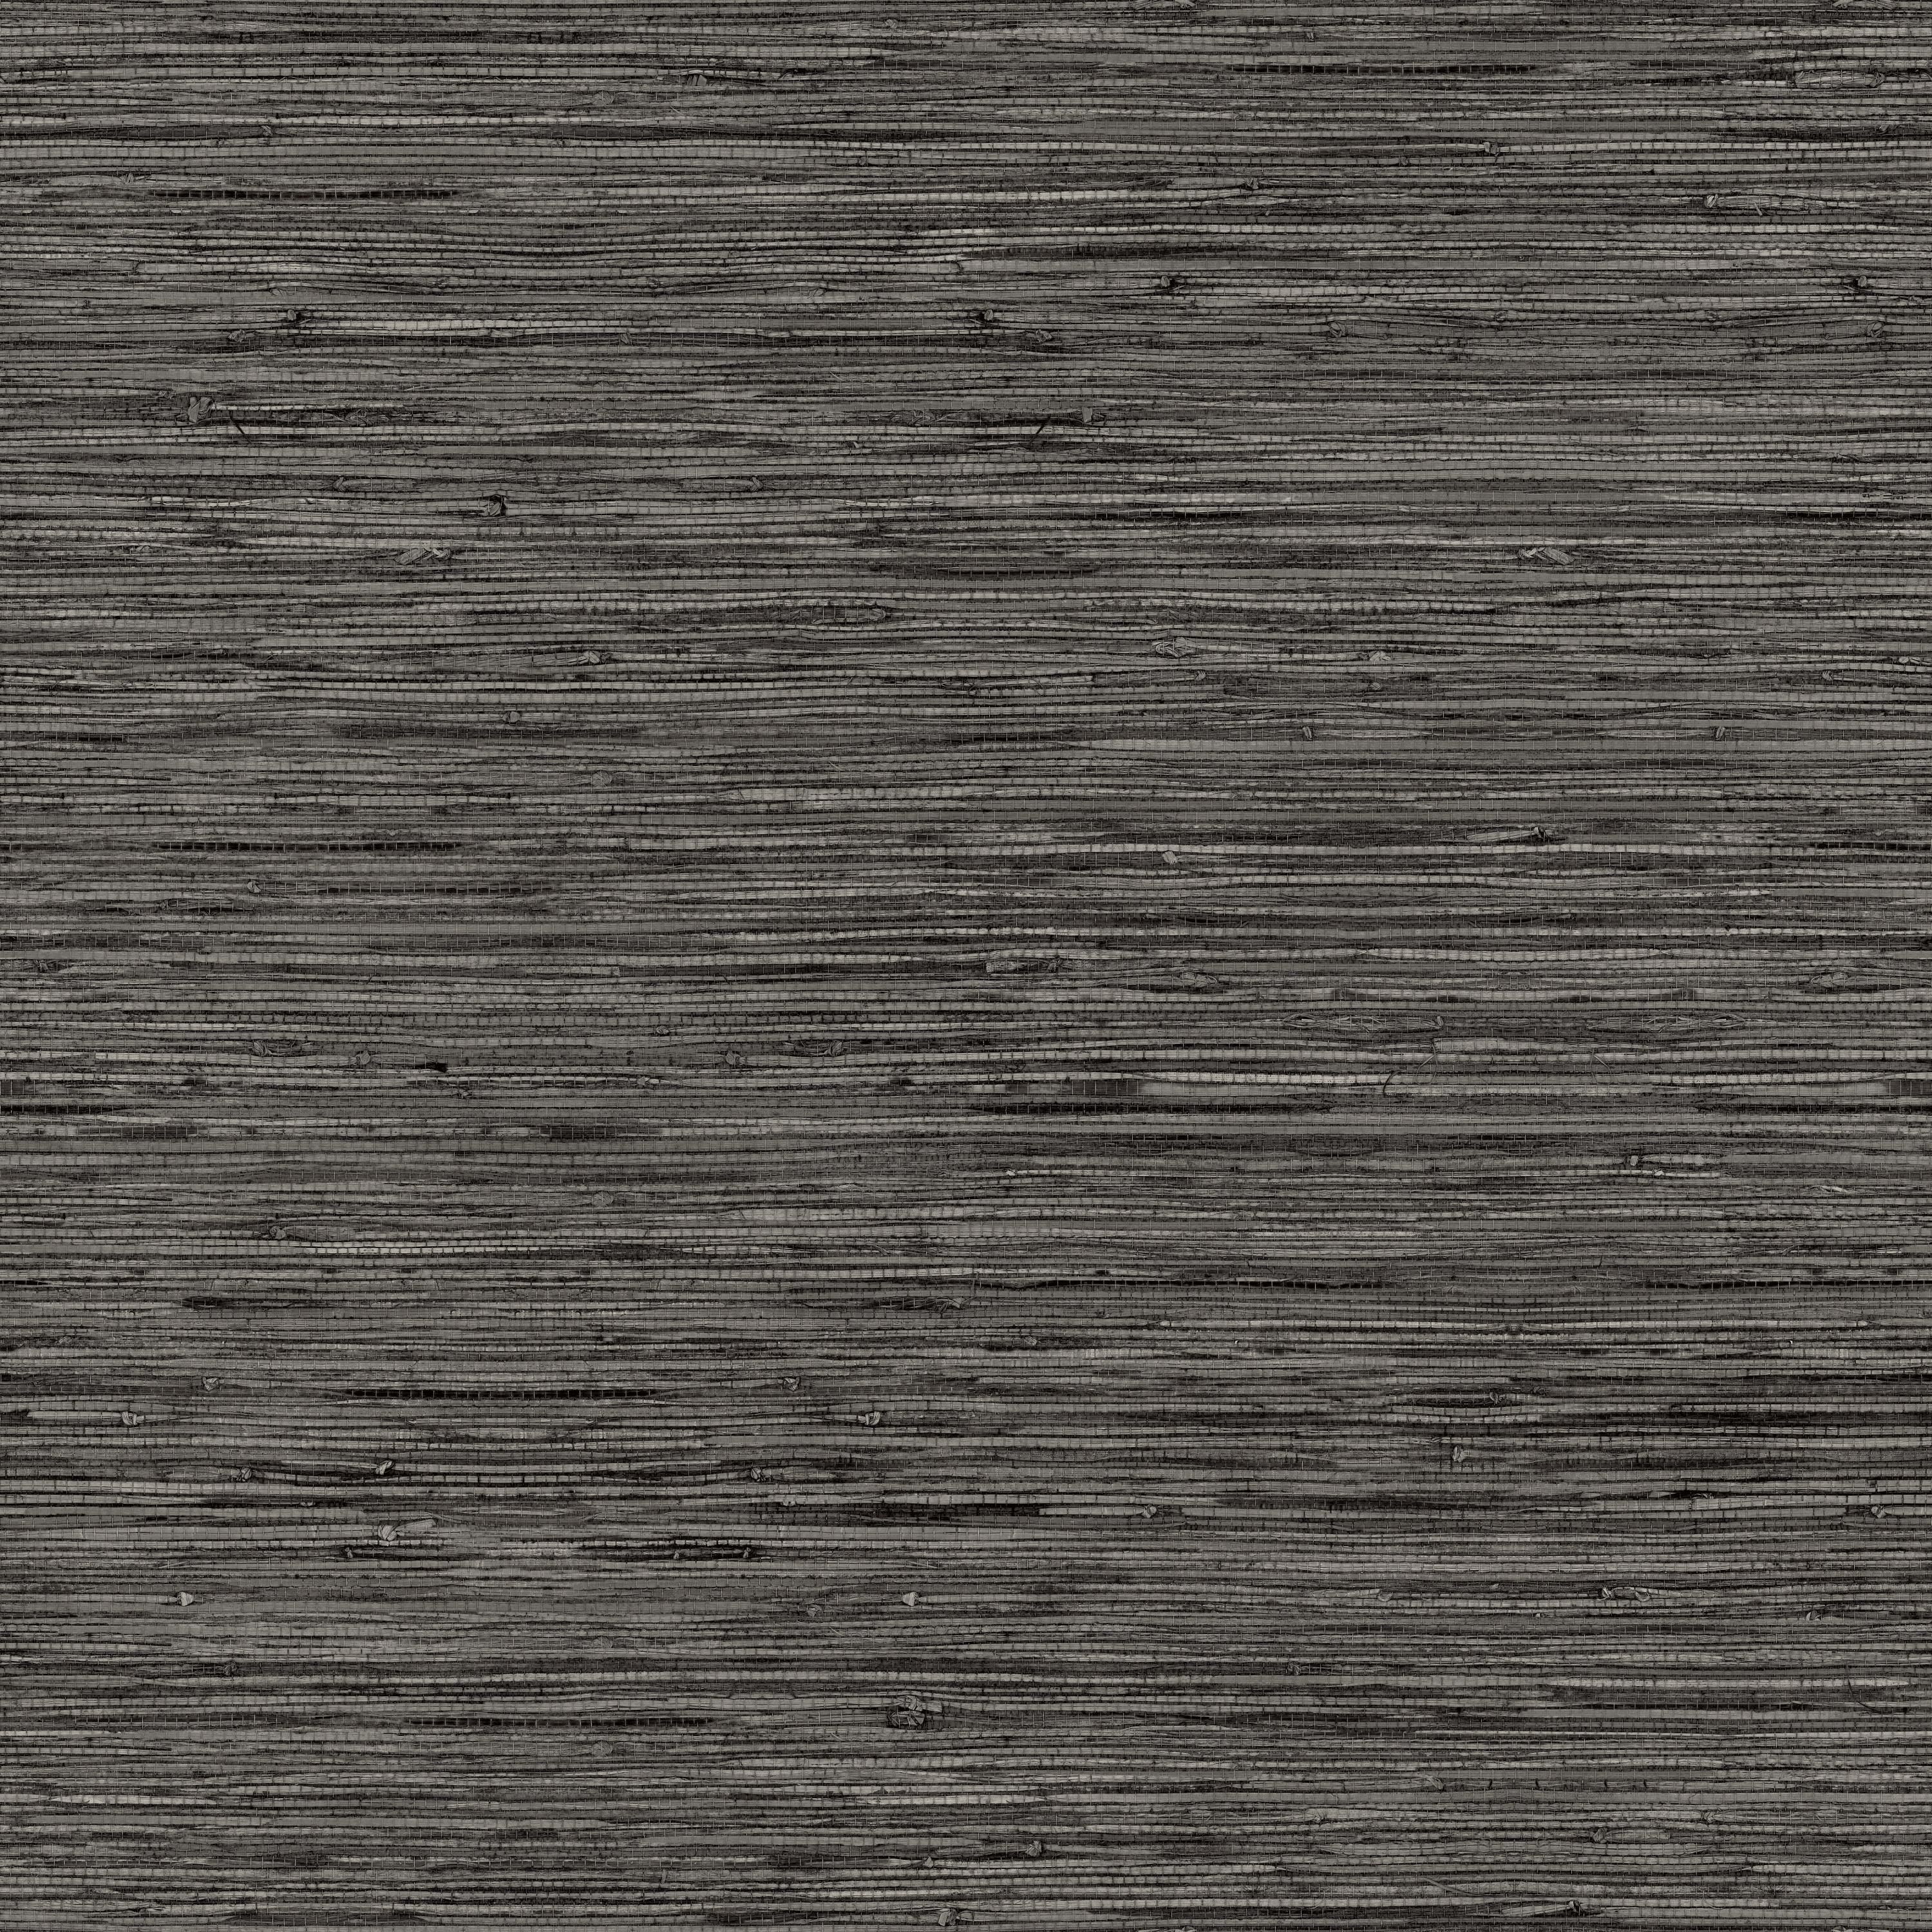 Roommates Grasscloth Grey Peel And Stick Wallpaper Walmart Com Grasscloth Wallpaper Grasscloth Peel And Stick Wallpaper